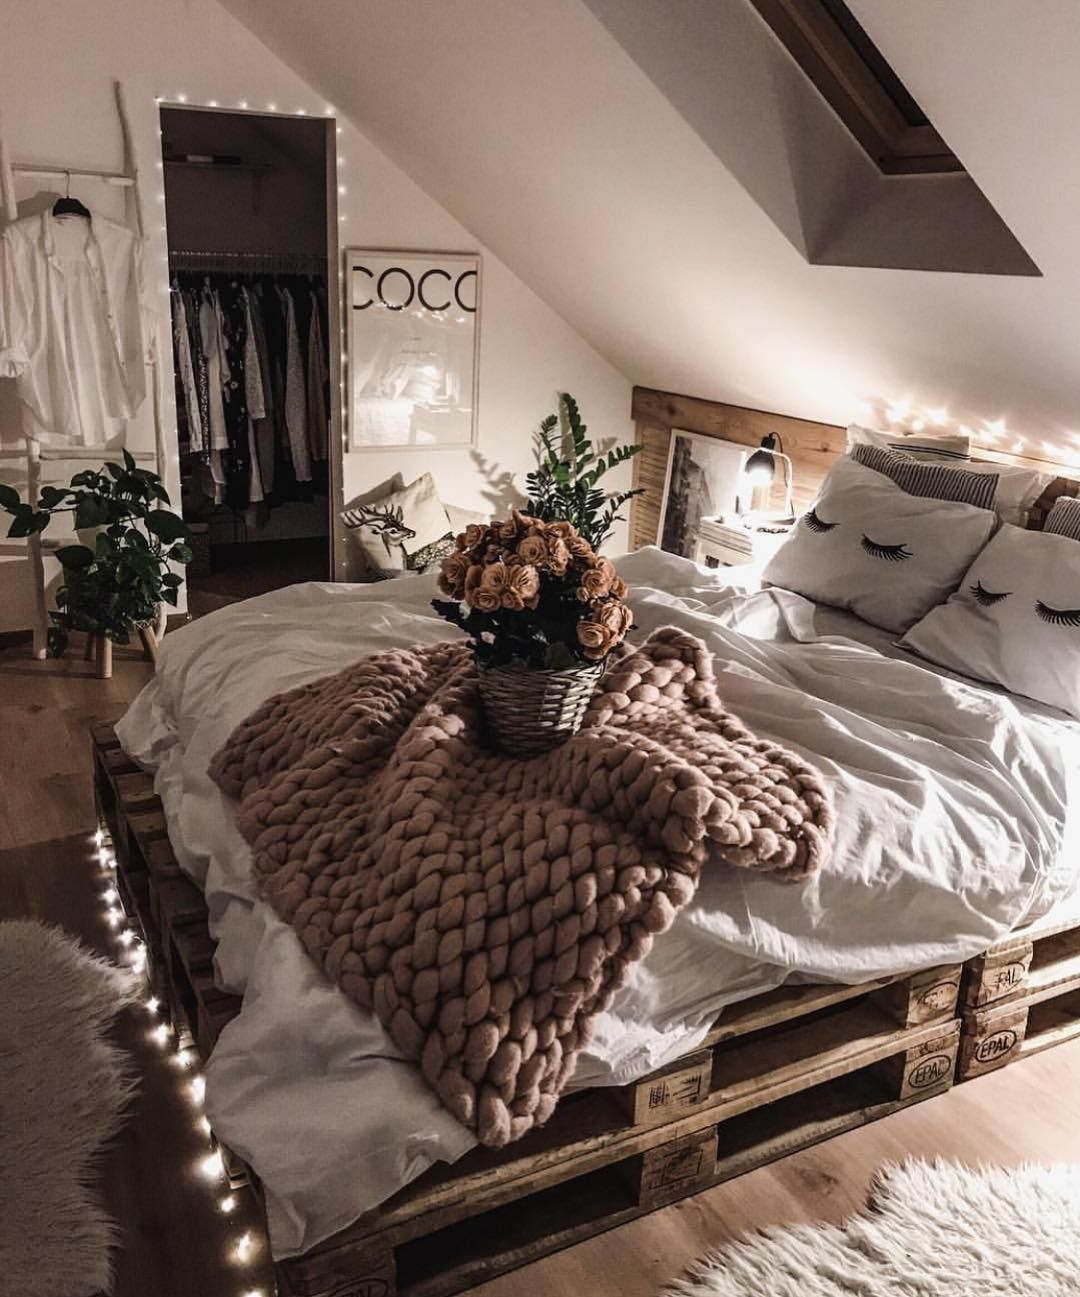 25 Rustic Bedroom Ideas That'll Ignite Your Creative Brain images